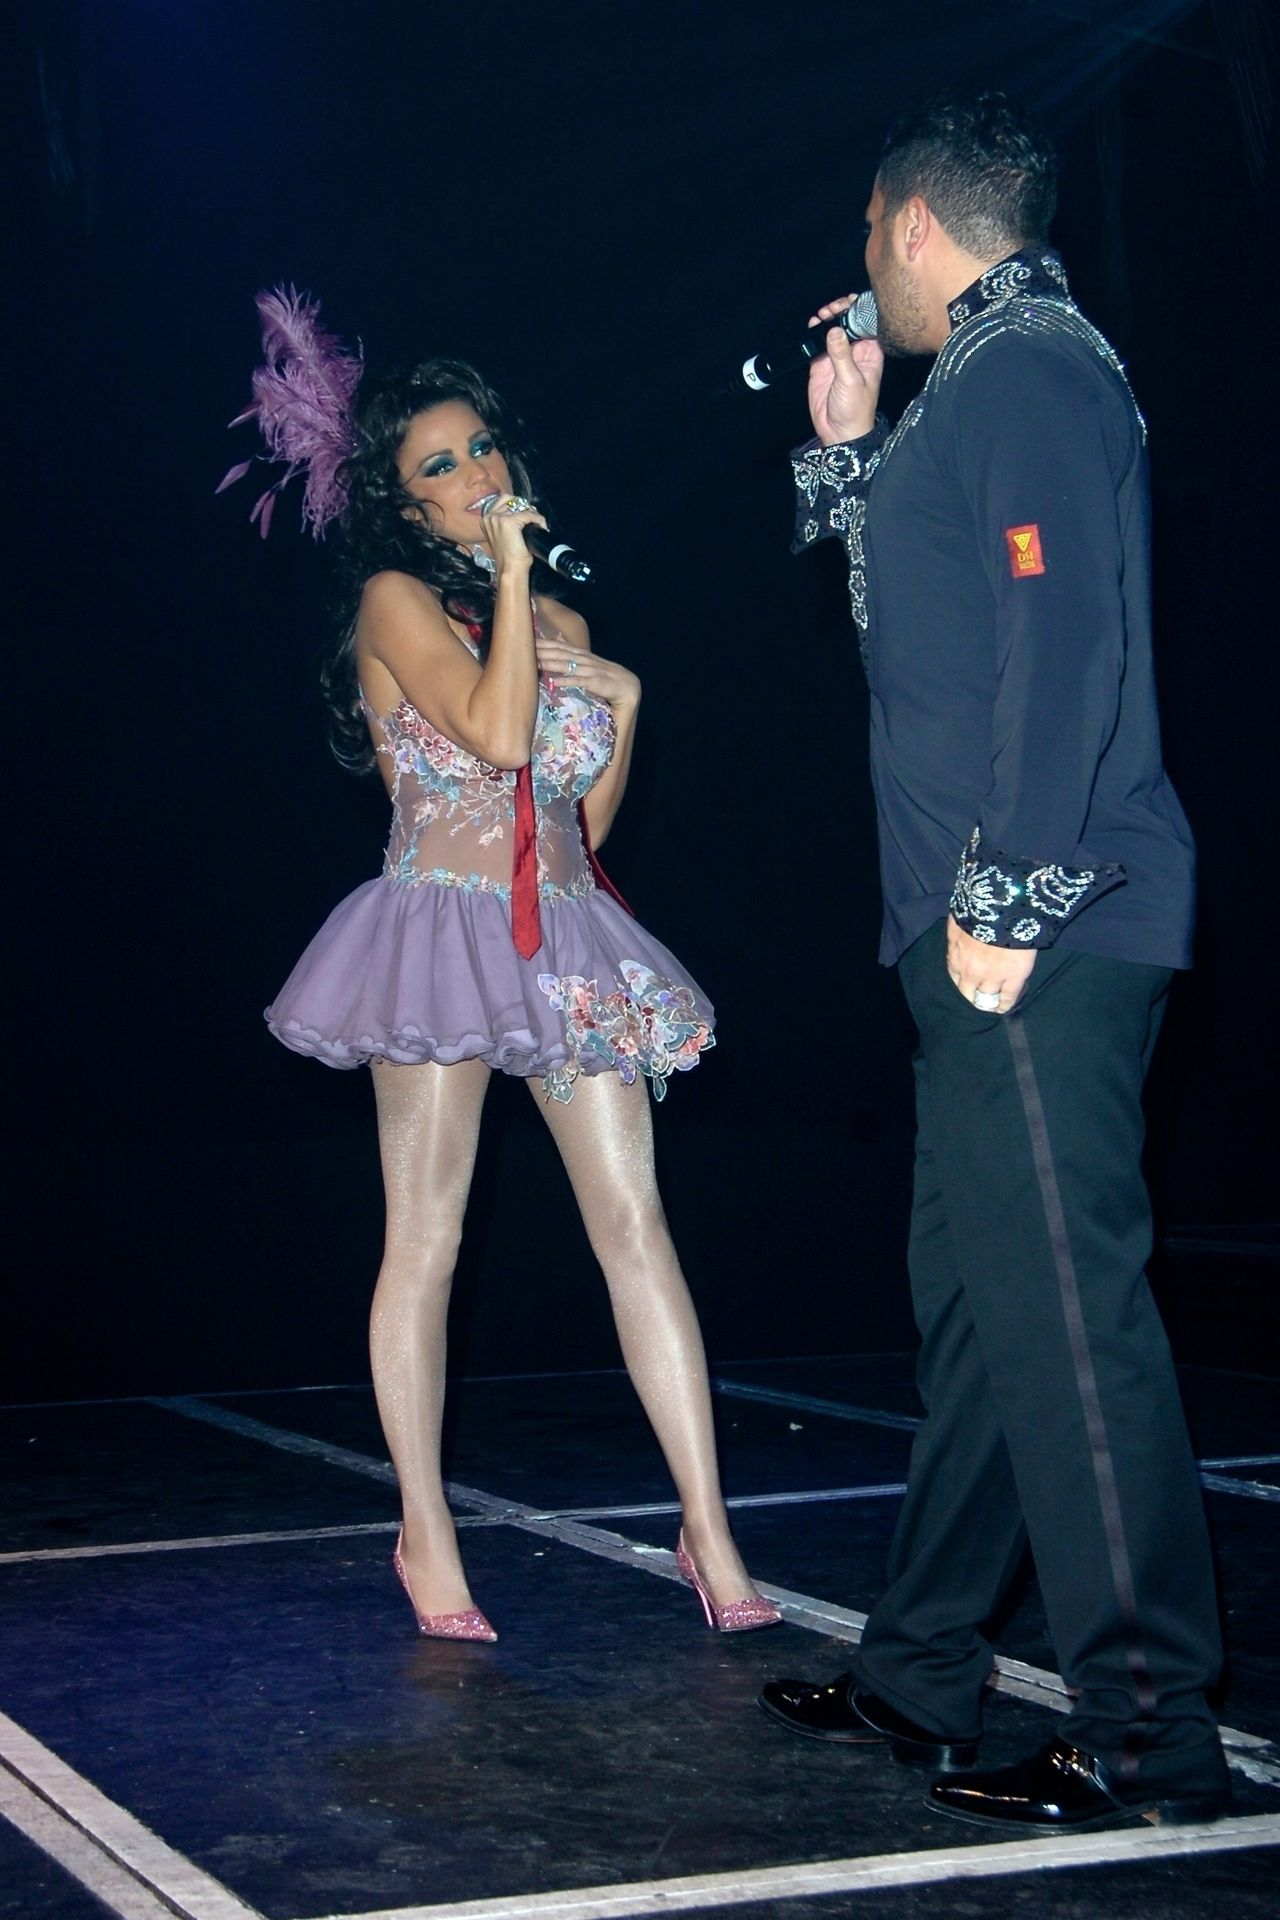 Katie Price & Peter Andre Perform At Gay Astoria In London 0022